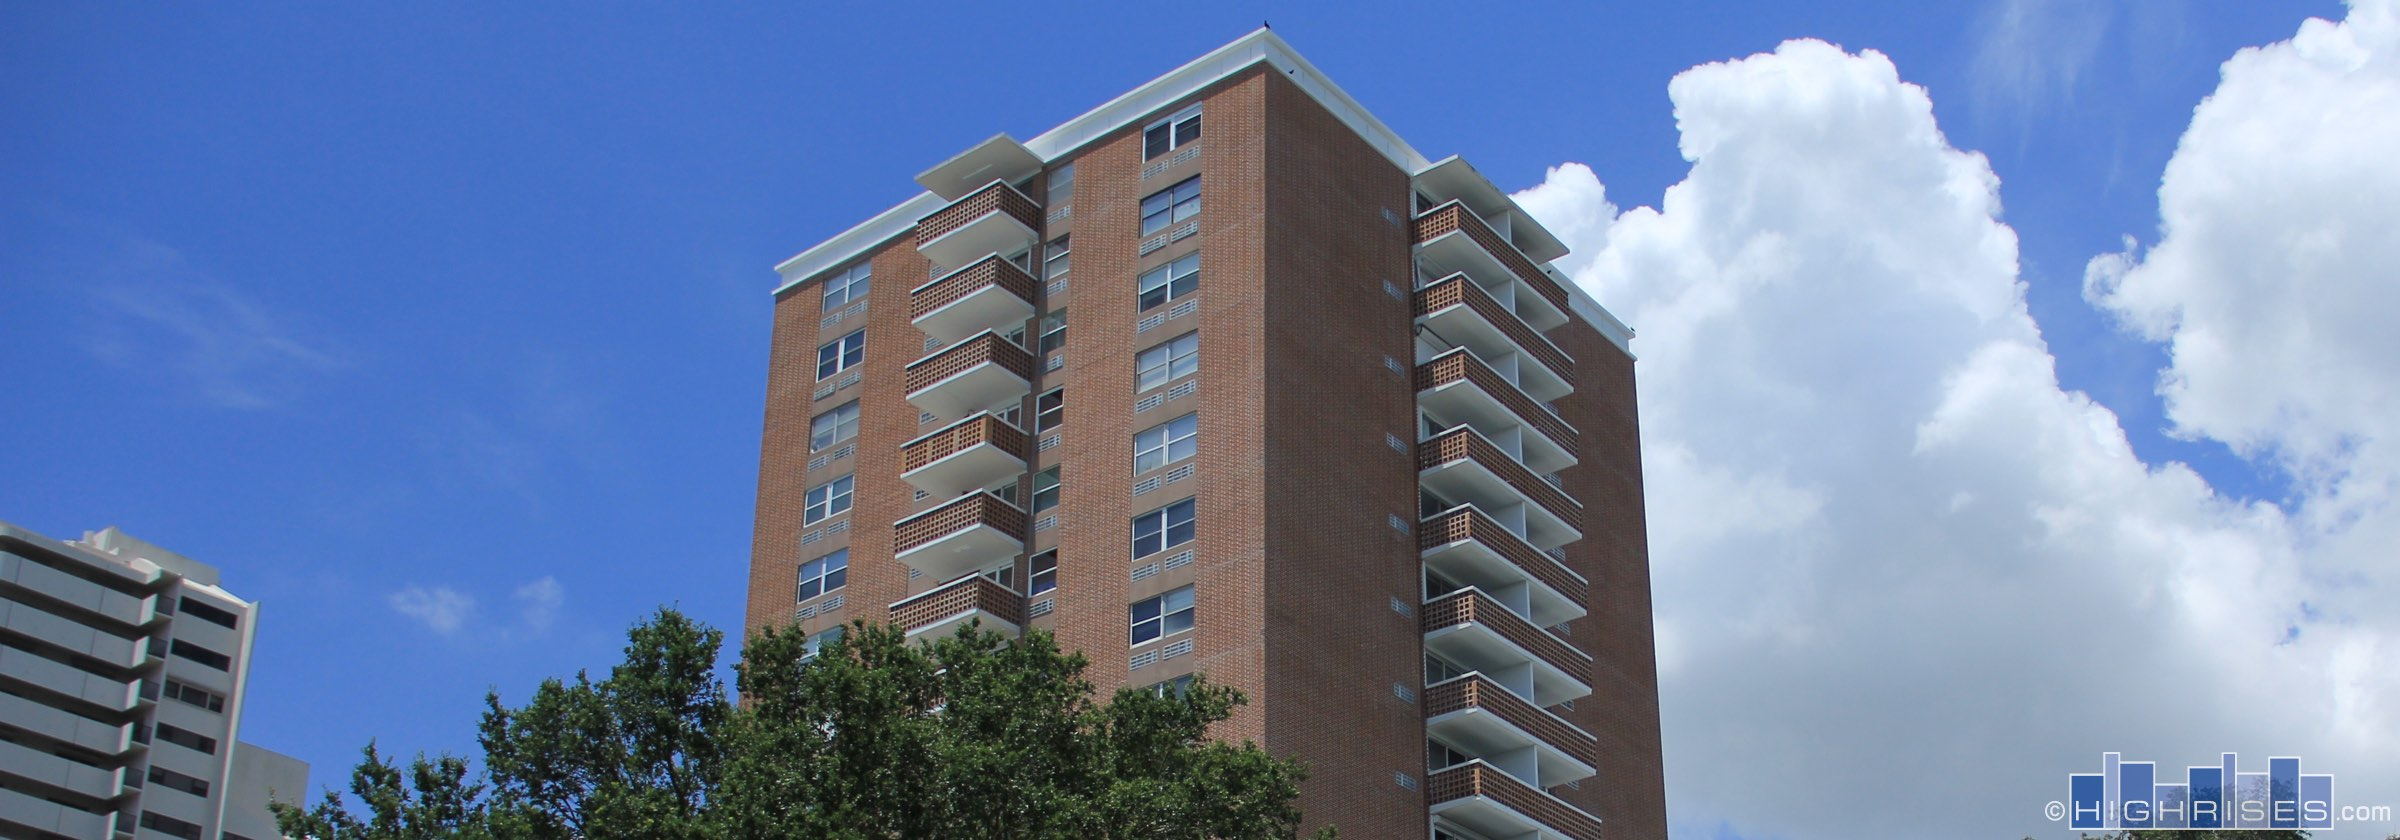 Bayshore Towers Condos For Sale In Tampa FL